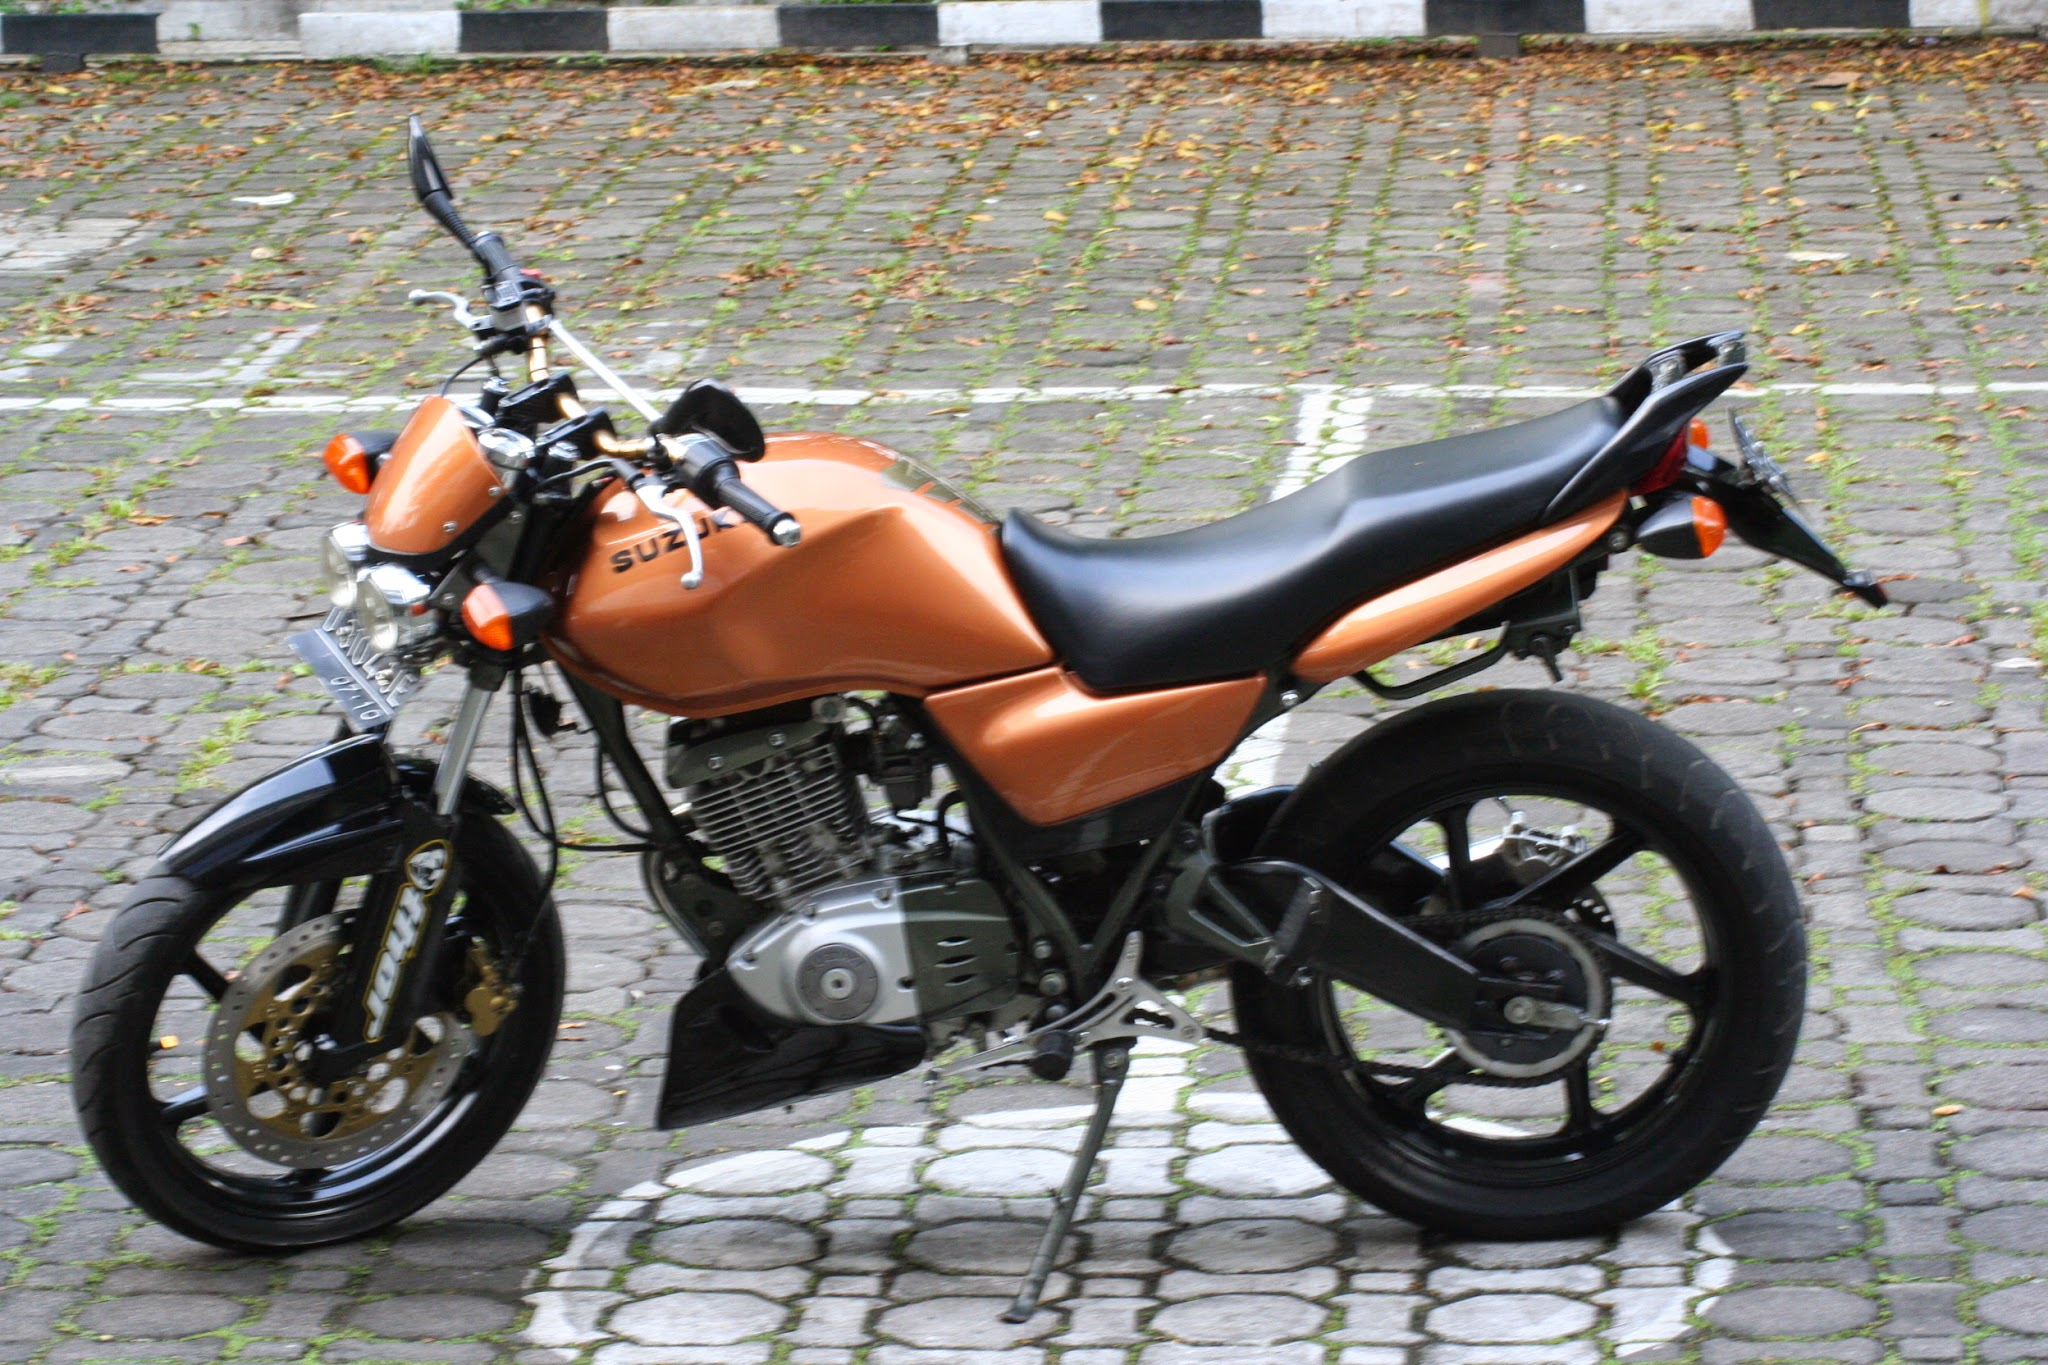 Suzuki Thunder 125 Modifikasi Cafe Racer